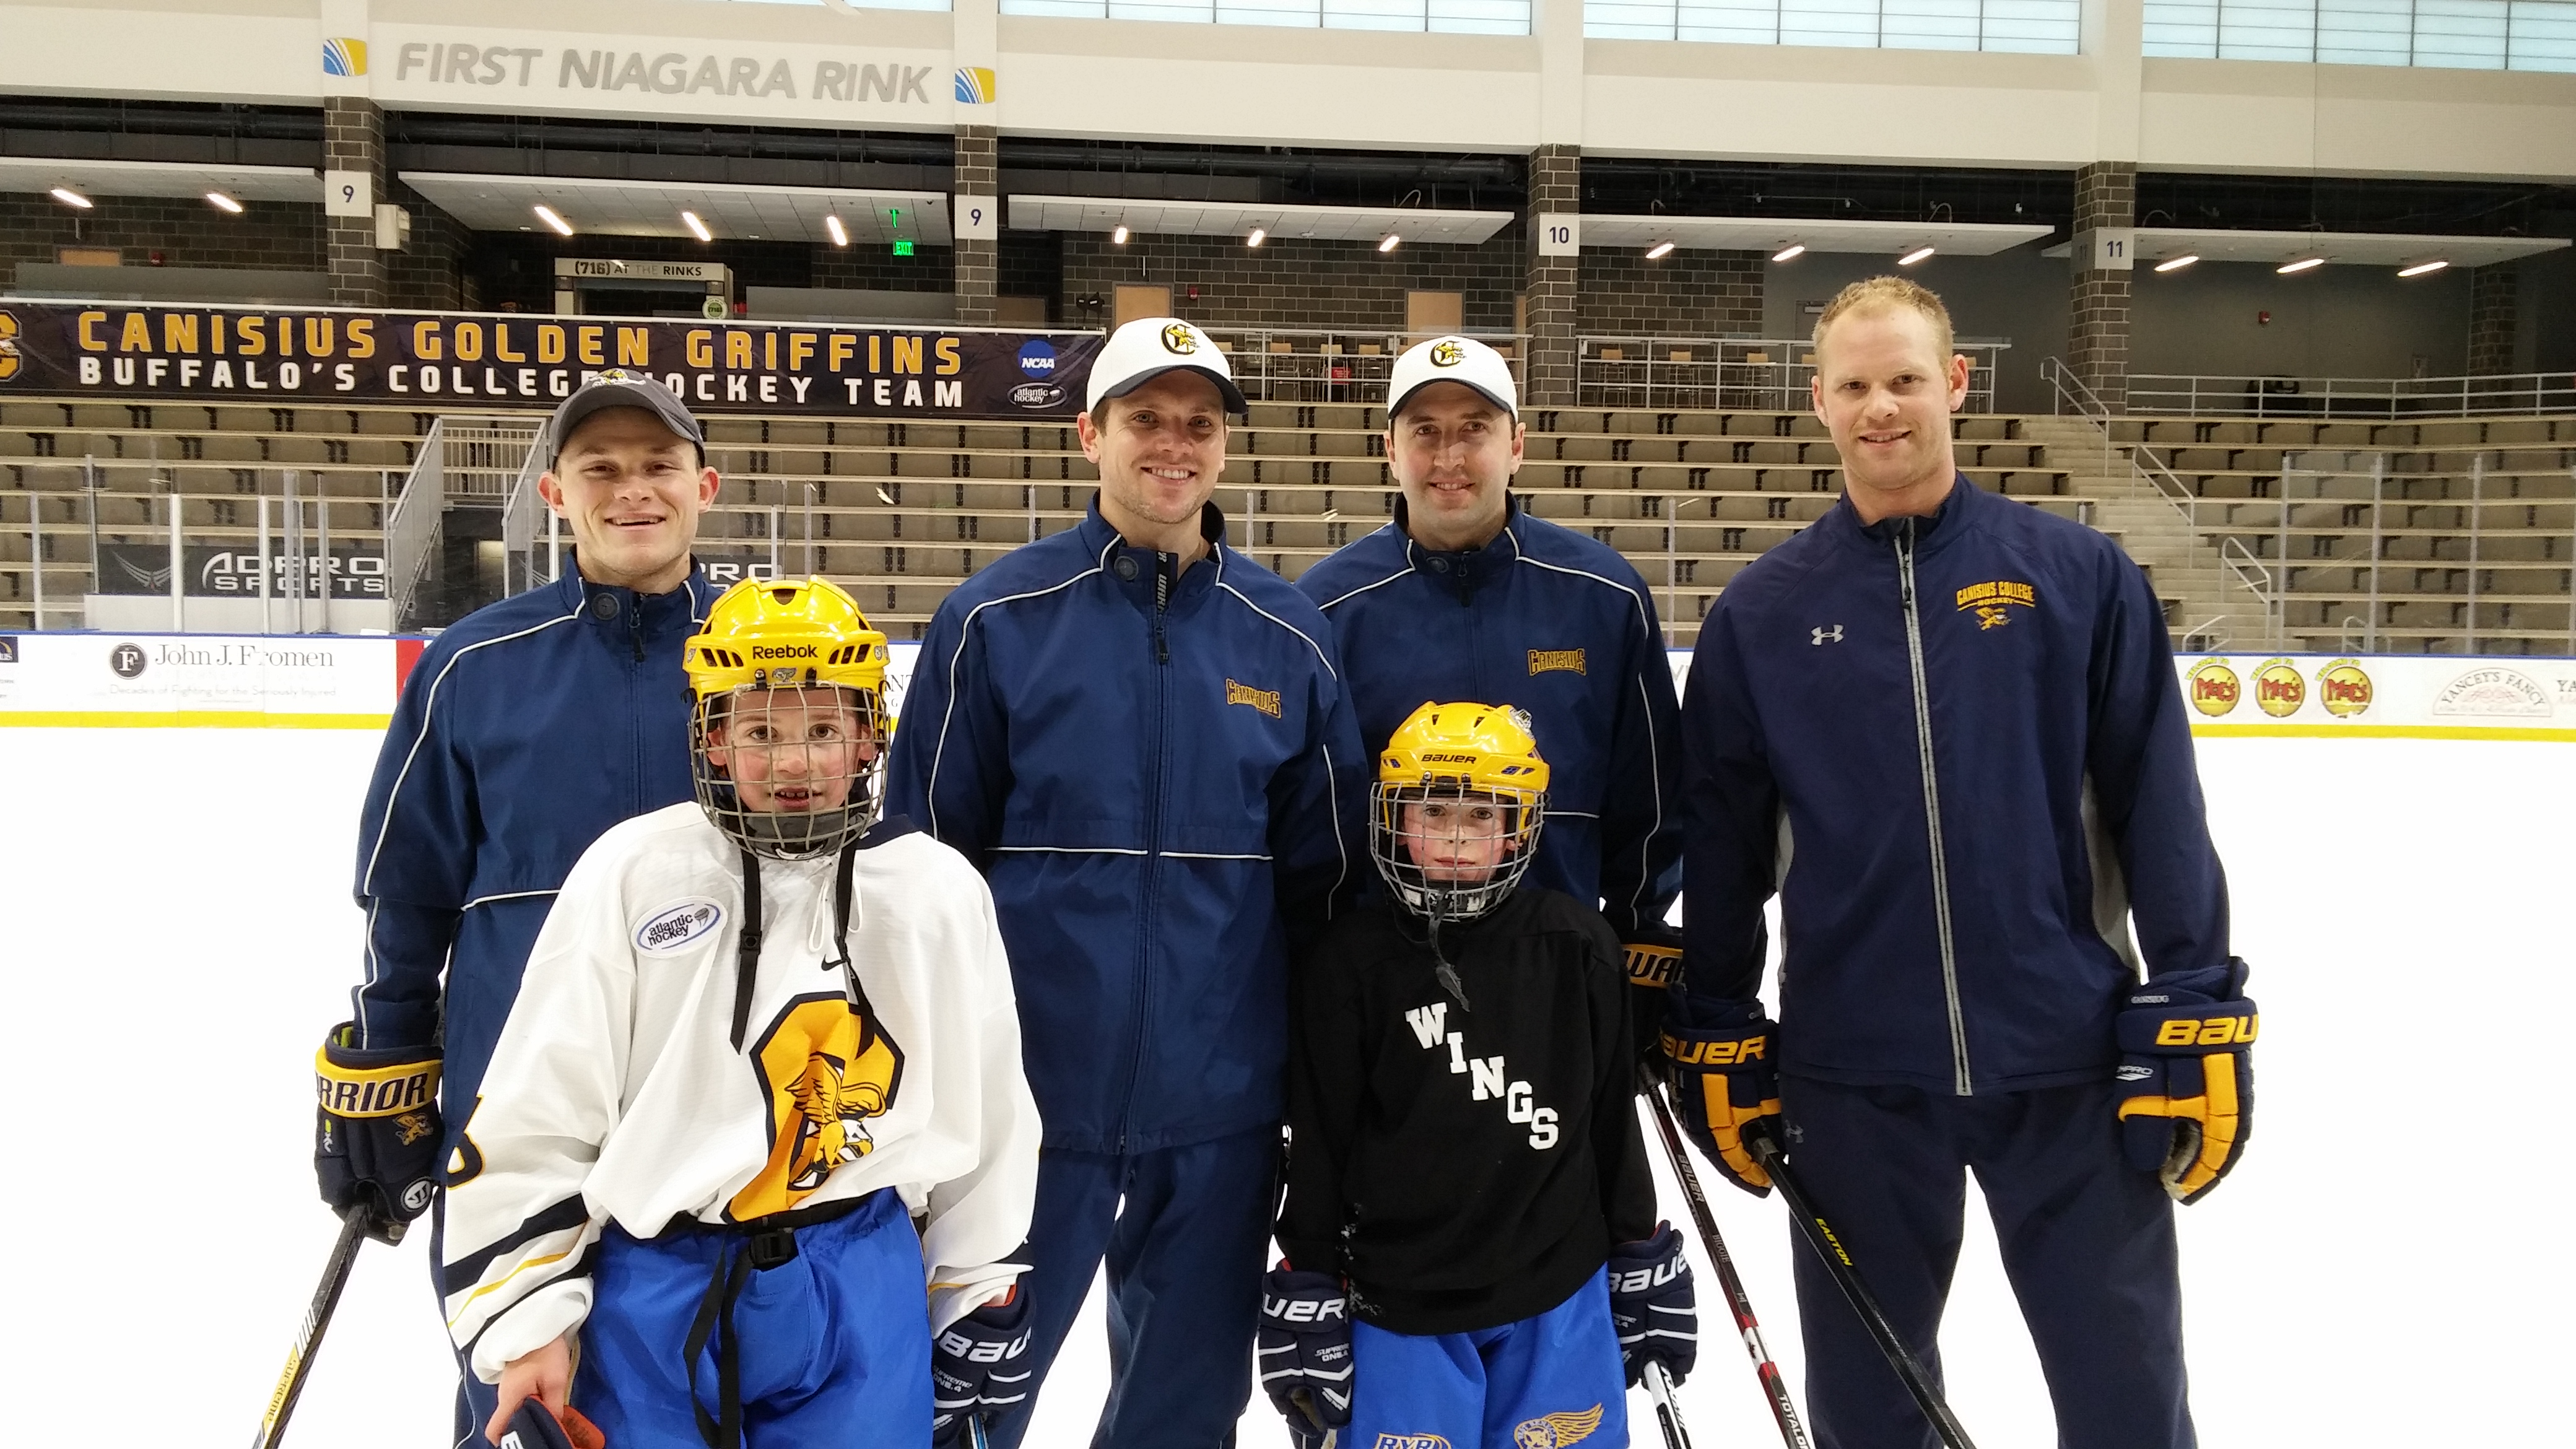 Canisius College Men's Ice Hockey Welcomes Newest Teammate